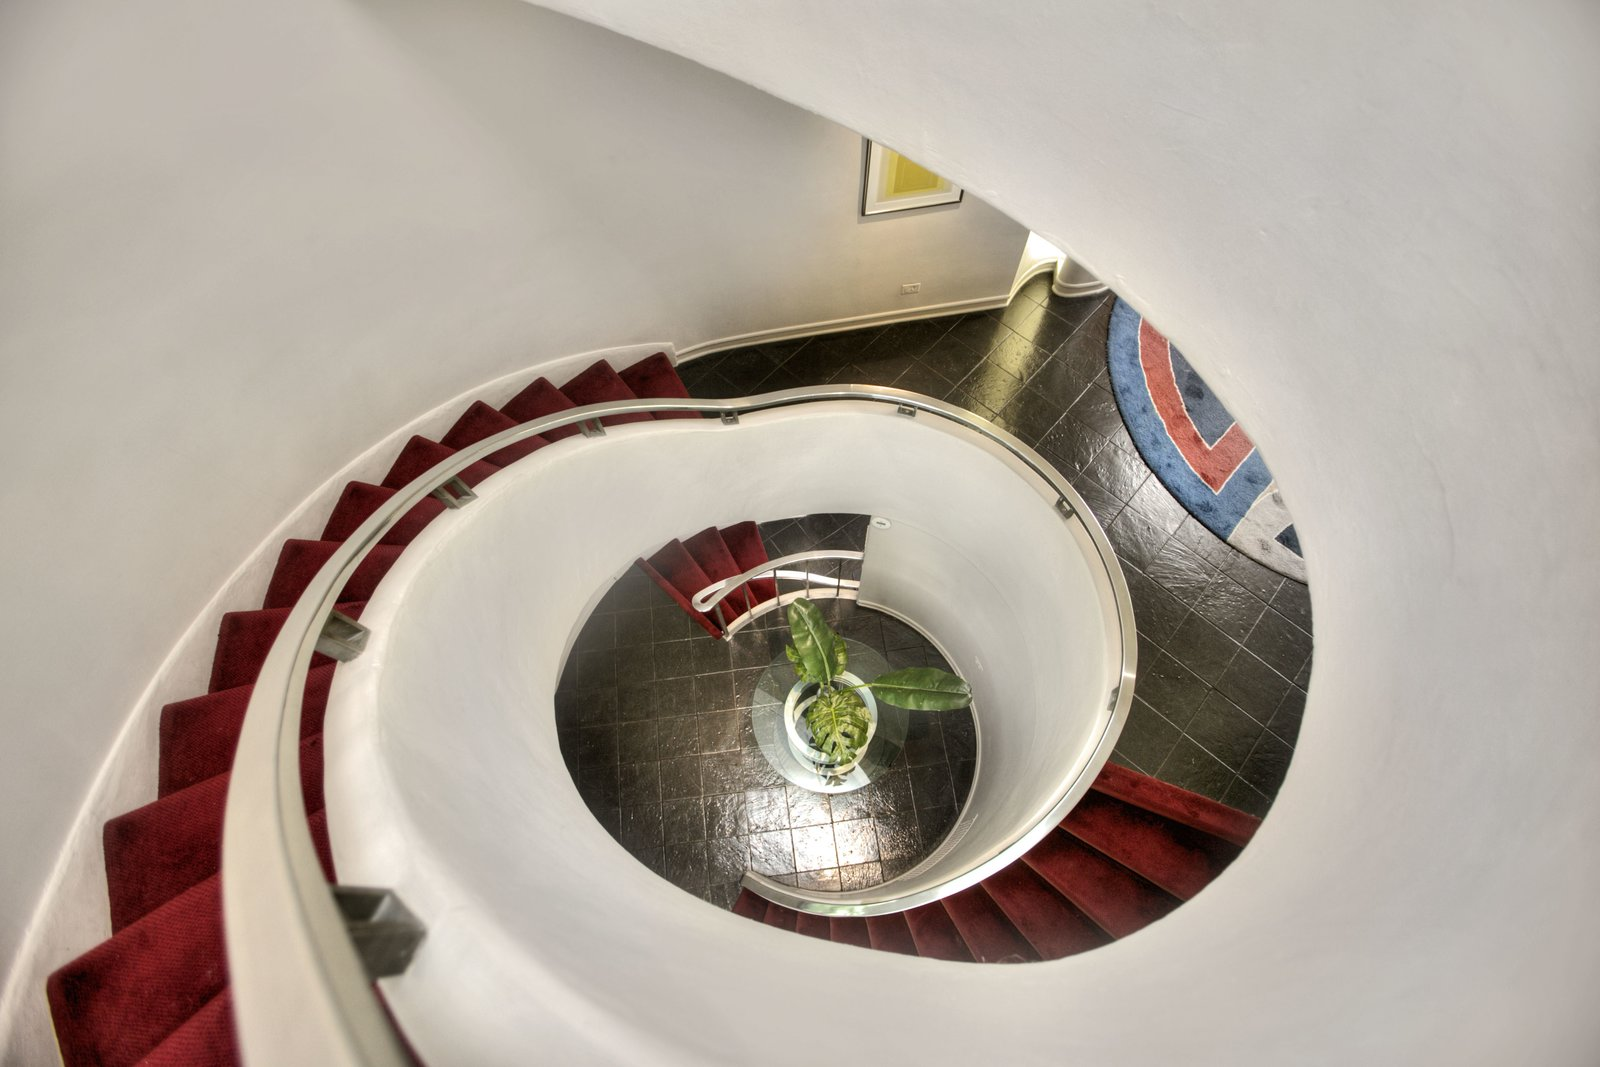 A spiraling staircase connects the home's three levels and leads into the foyer. A Curvaceous Connecticut Home Asks $2.6M - Photo 5 of 9